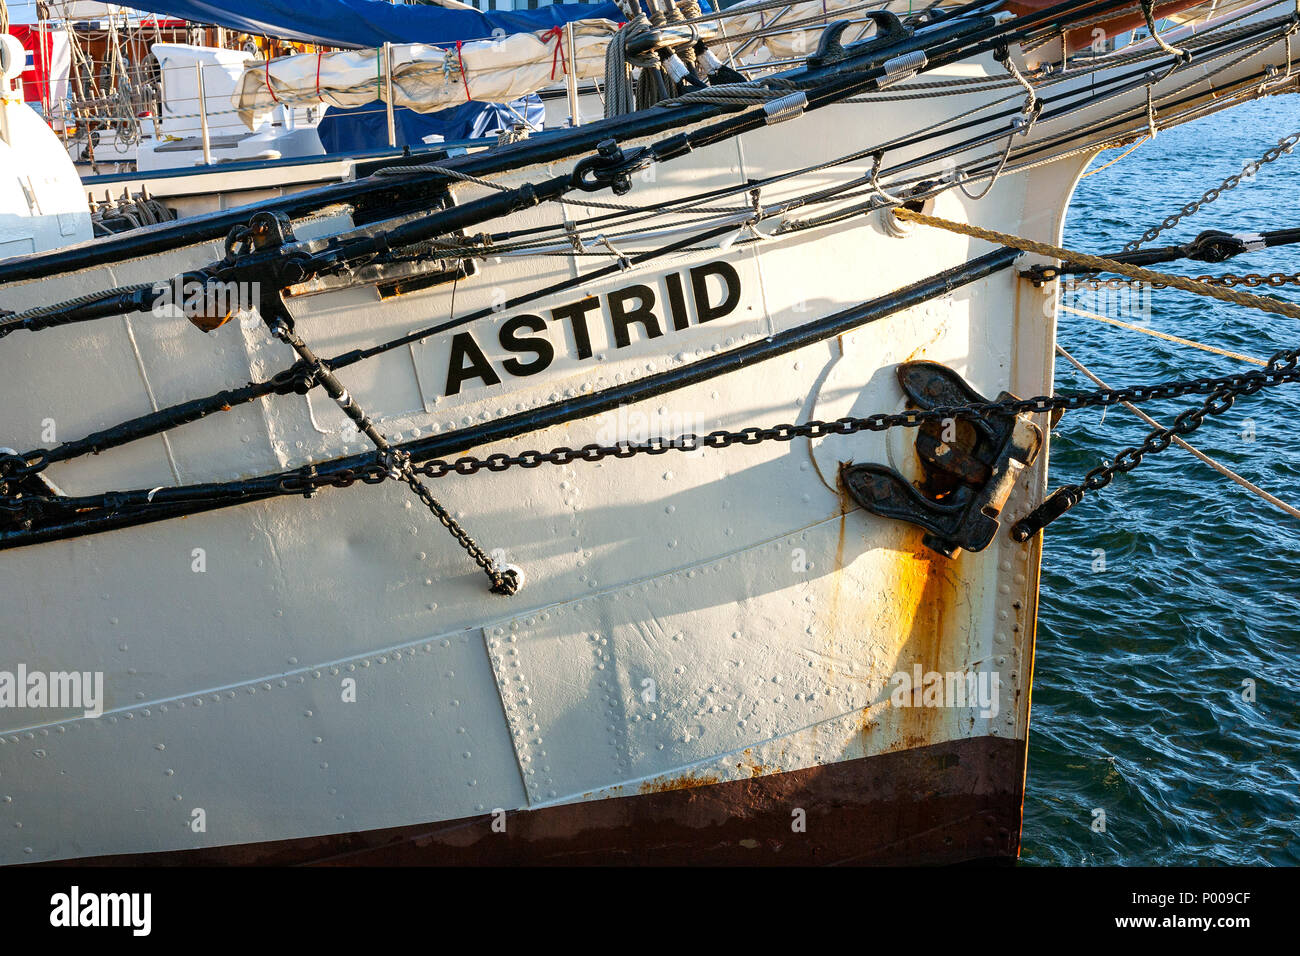 Tall Ships Race 2008. Bergen, Norway - August 2008 Bow of the Dutch  'Astrid' (square rigged brig). - Stock Image